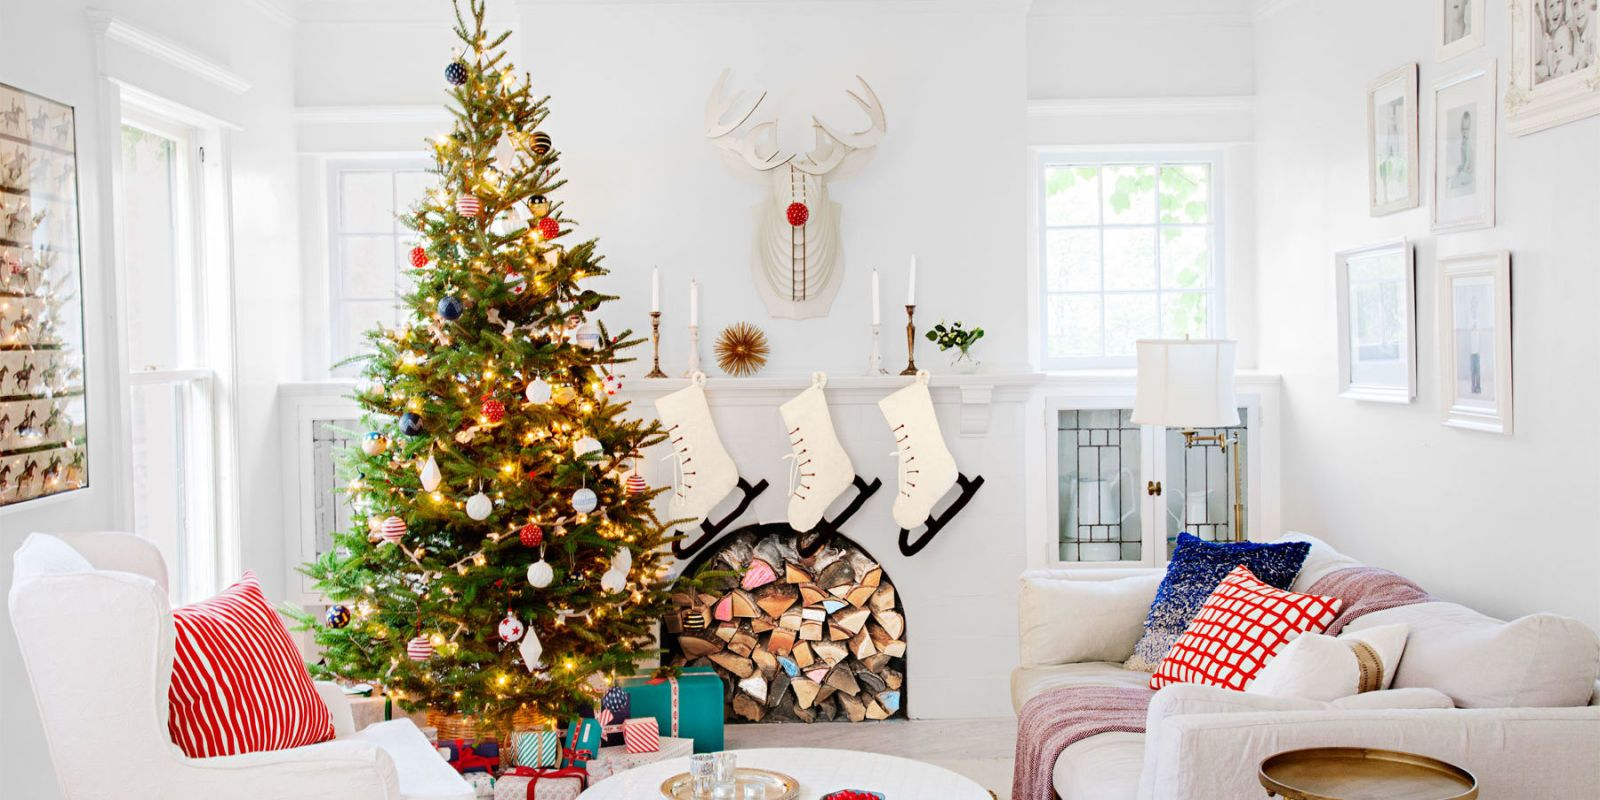 ... Buckets Of Snowy Paint (102 Gallons, To Be Exact!), Minneapolis  Designer Jennaea Gearhart Created A Pristine Backdrop That Lets Holiday  Accents Shine.